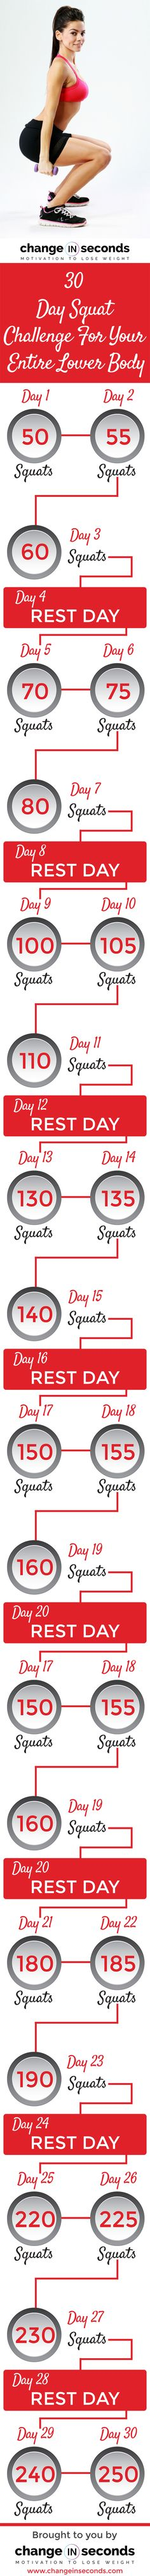 30 Day Squat Challenge Chart (Download PDF) http://www.changeinseconds.com/30-day-squat-challenge-for-your-entire-lower-body/